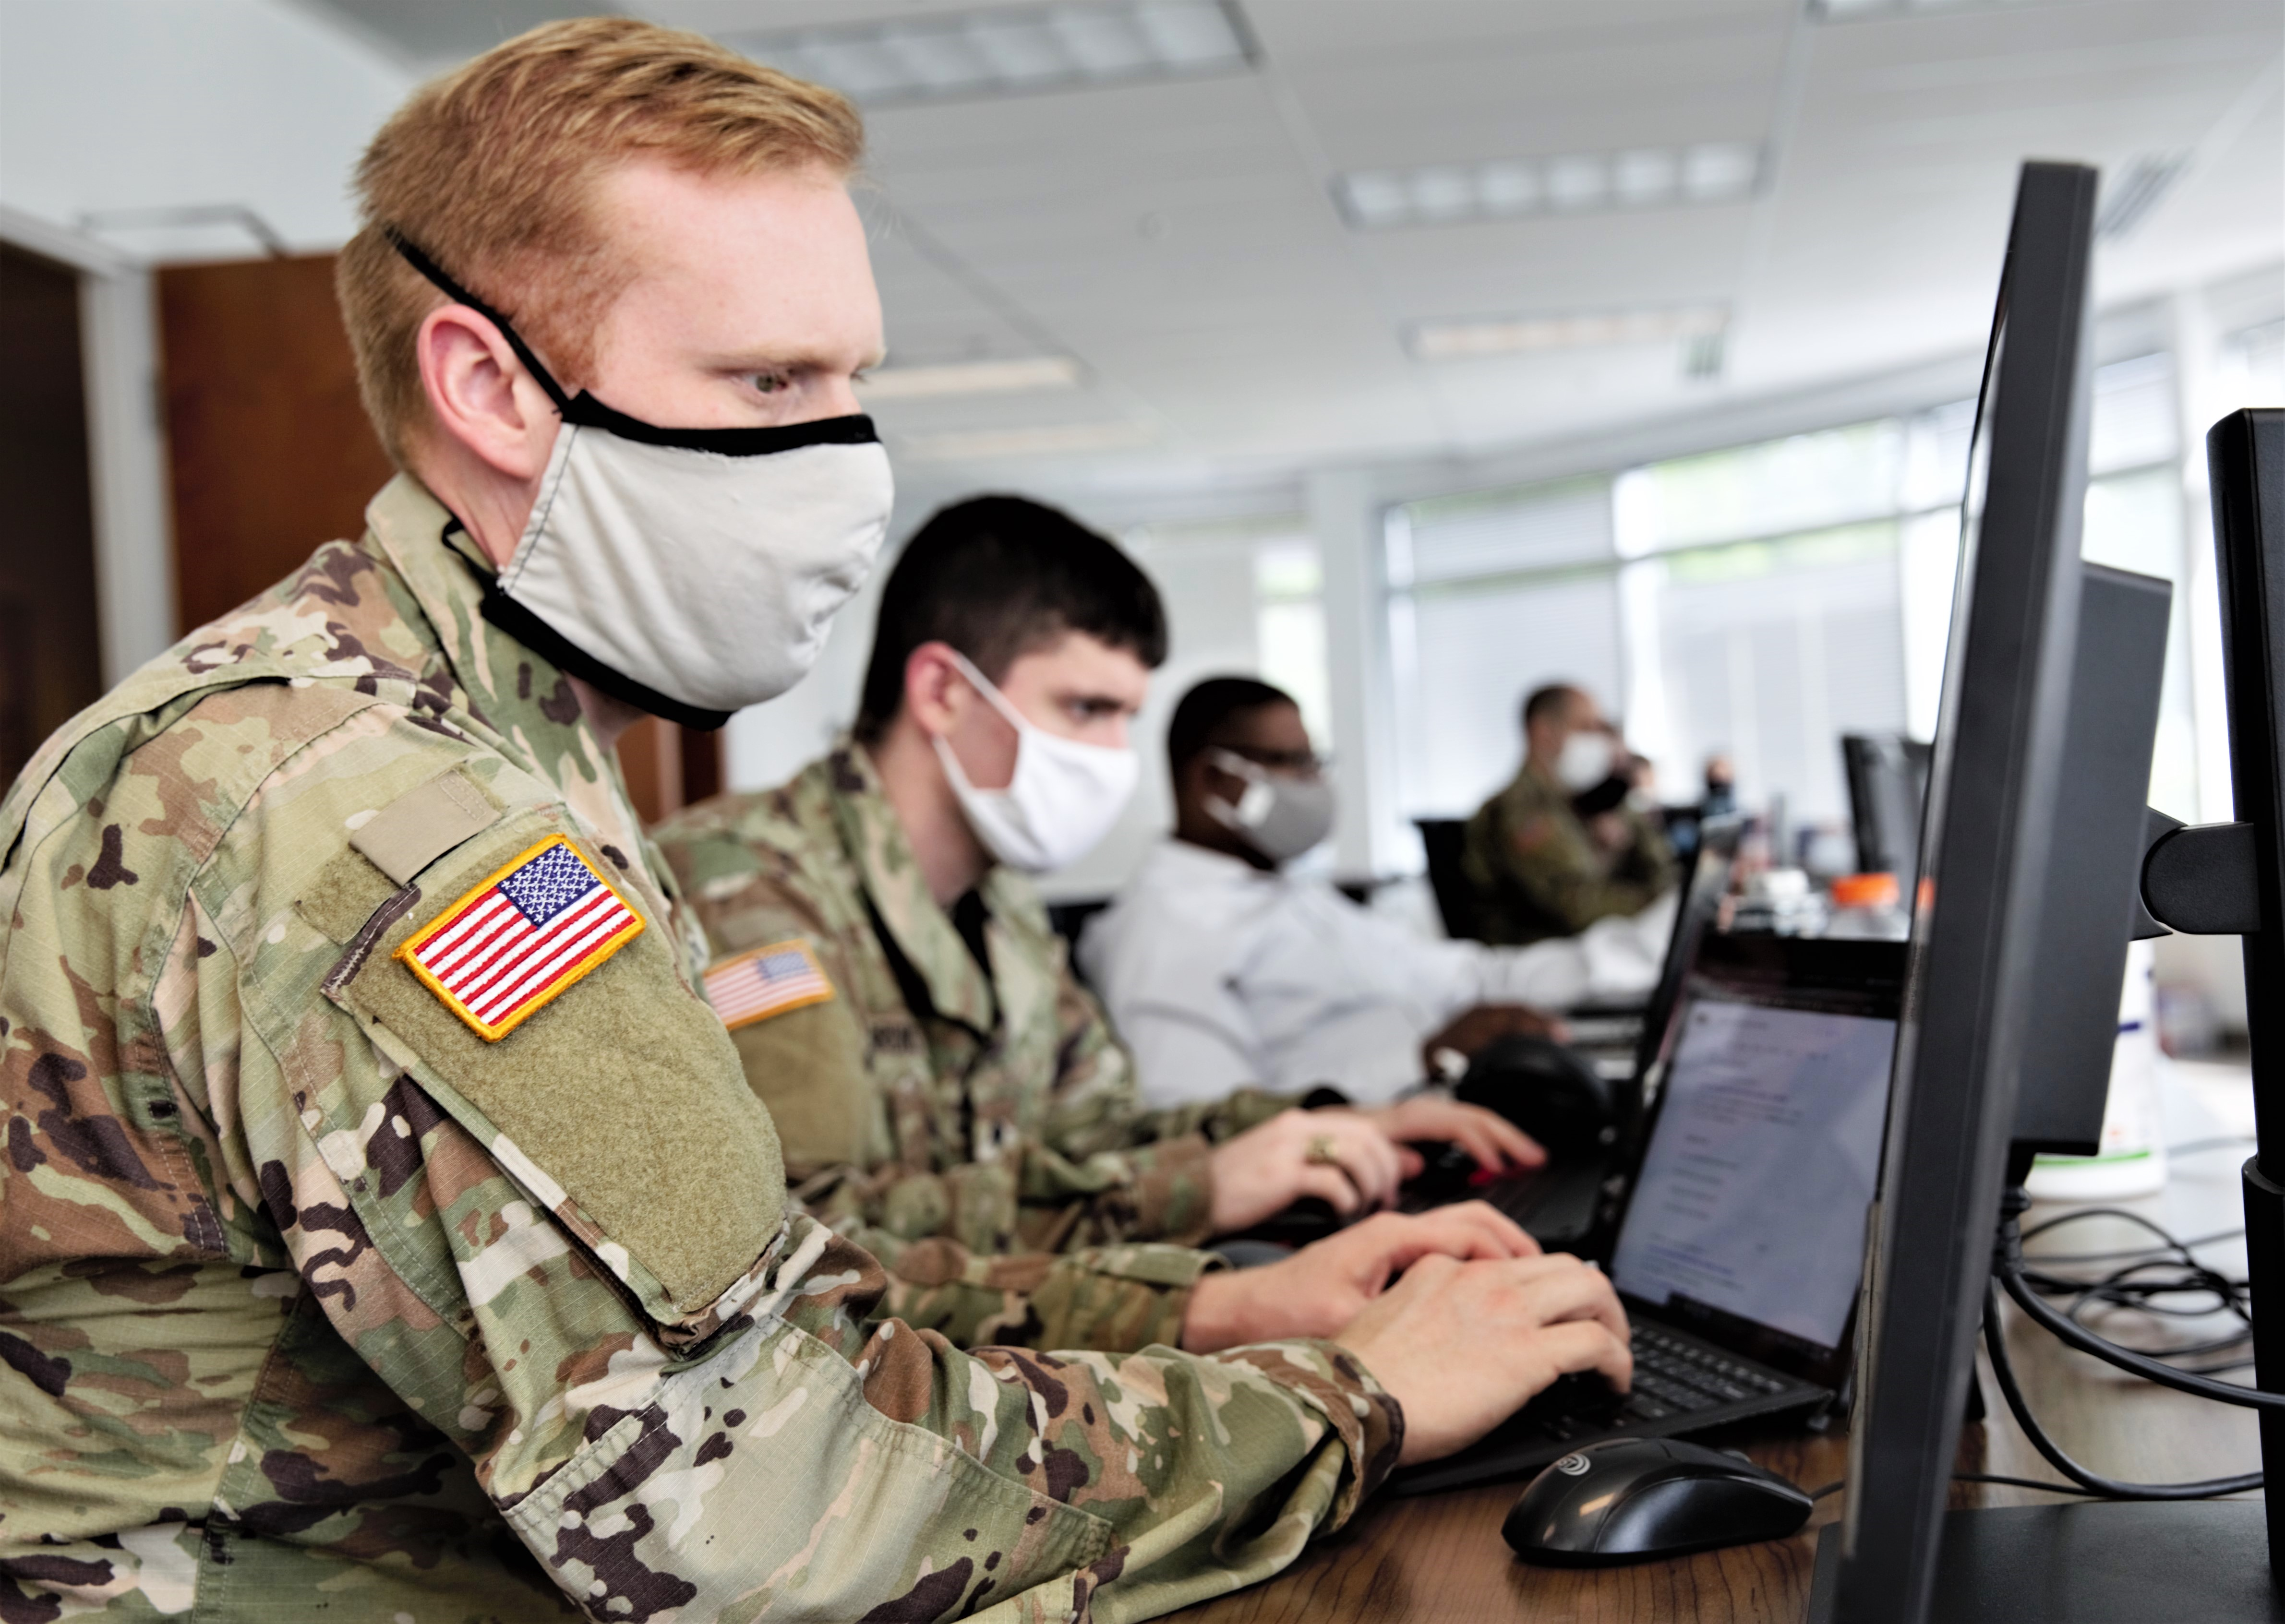 The head of U.S. Cyber Command hinted that the cyber mission force could soon receive a bump in personnel. (MCC Jon Dasbach/U.S. Cyber Command)